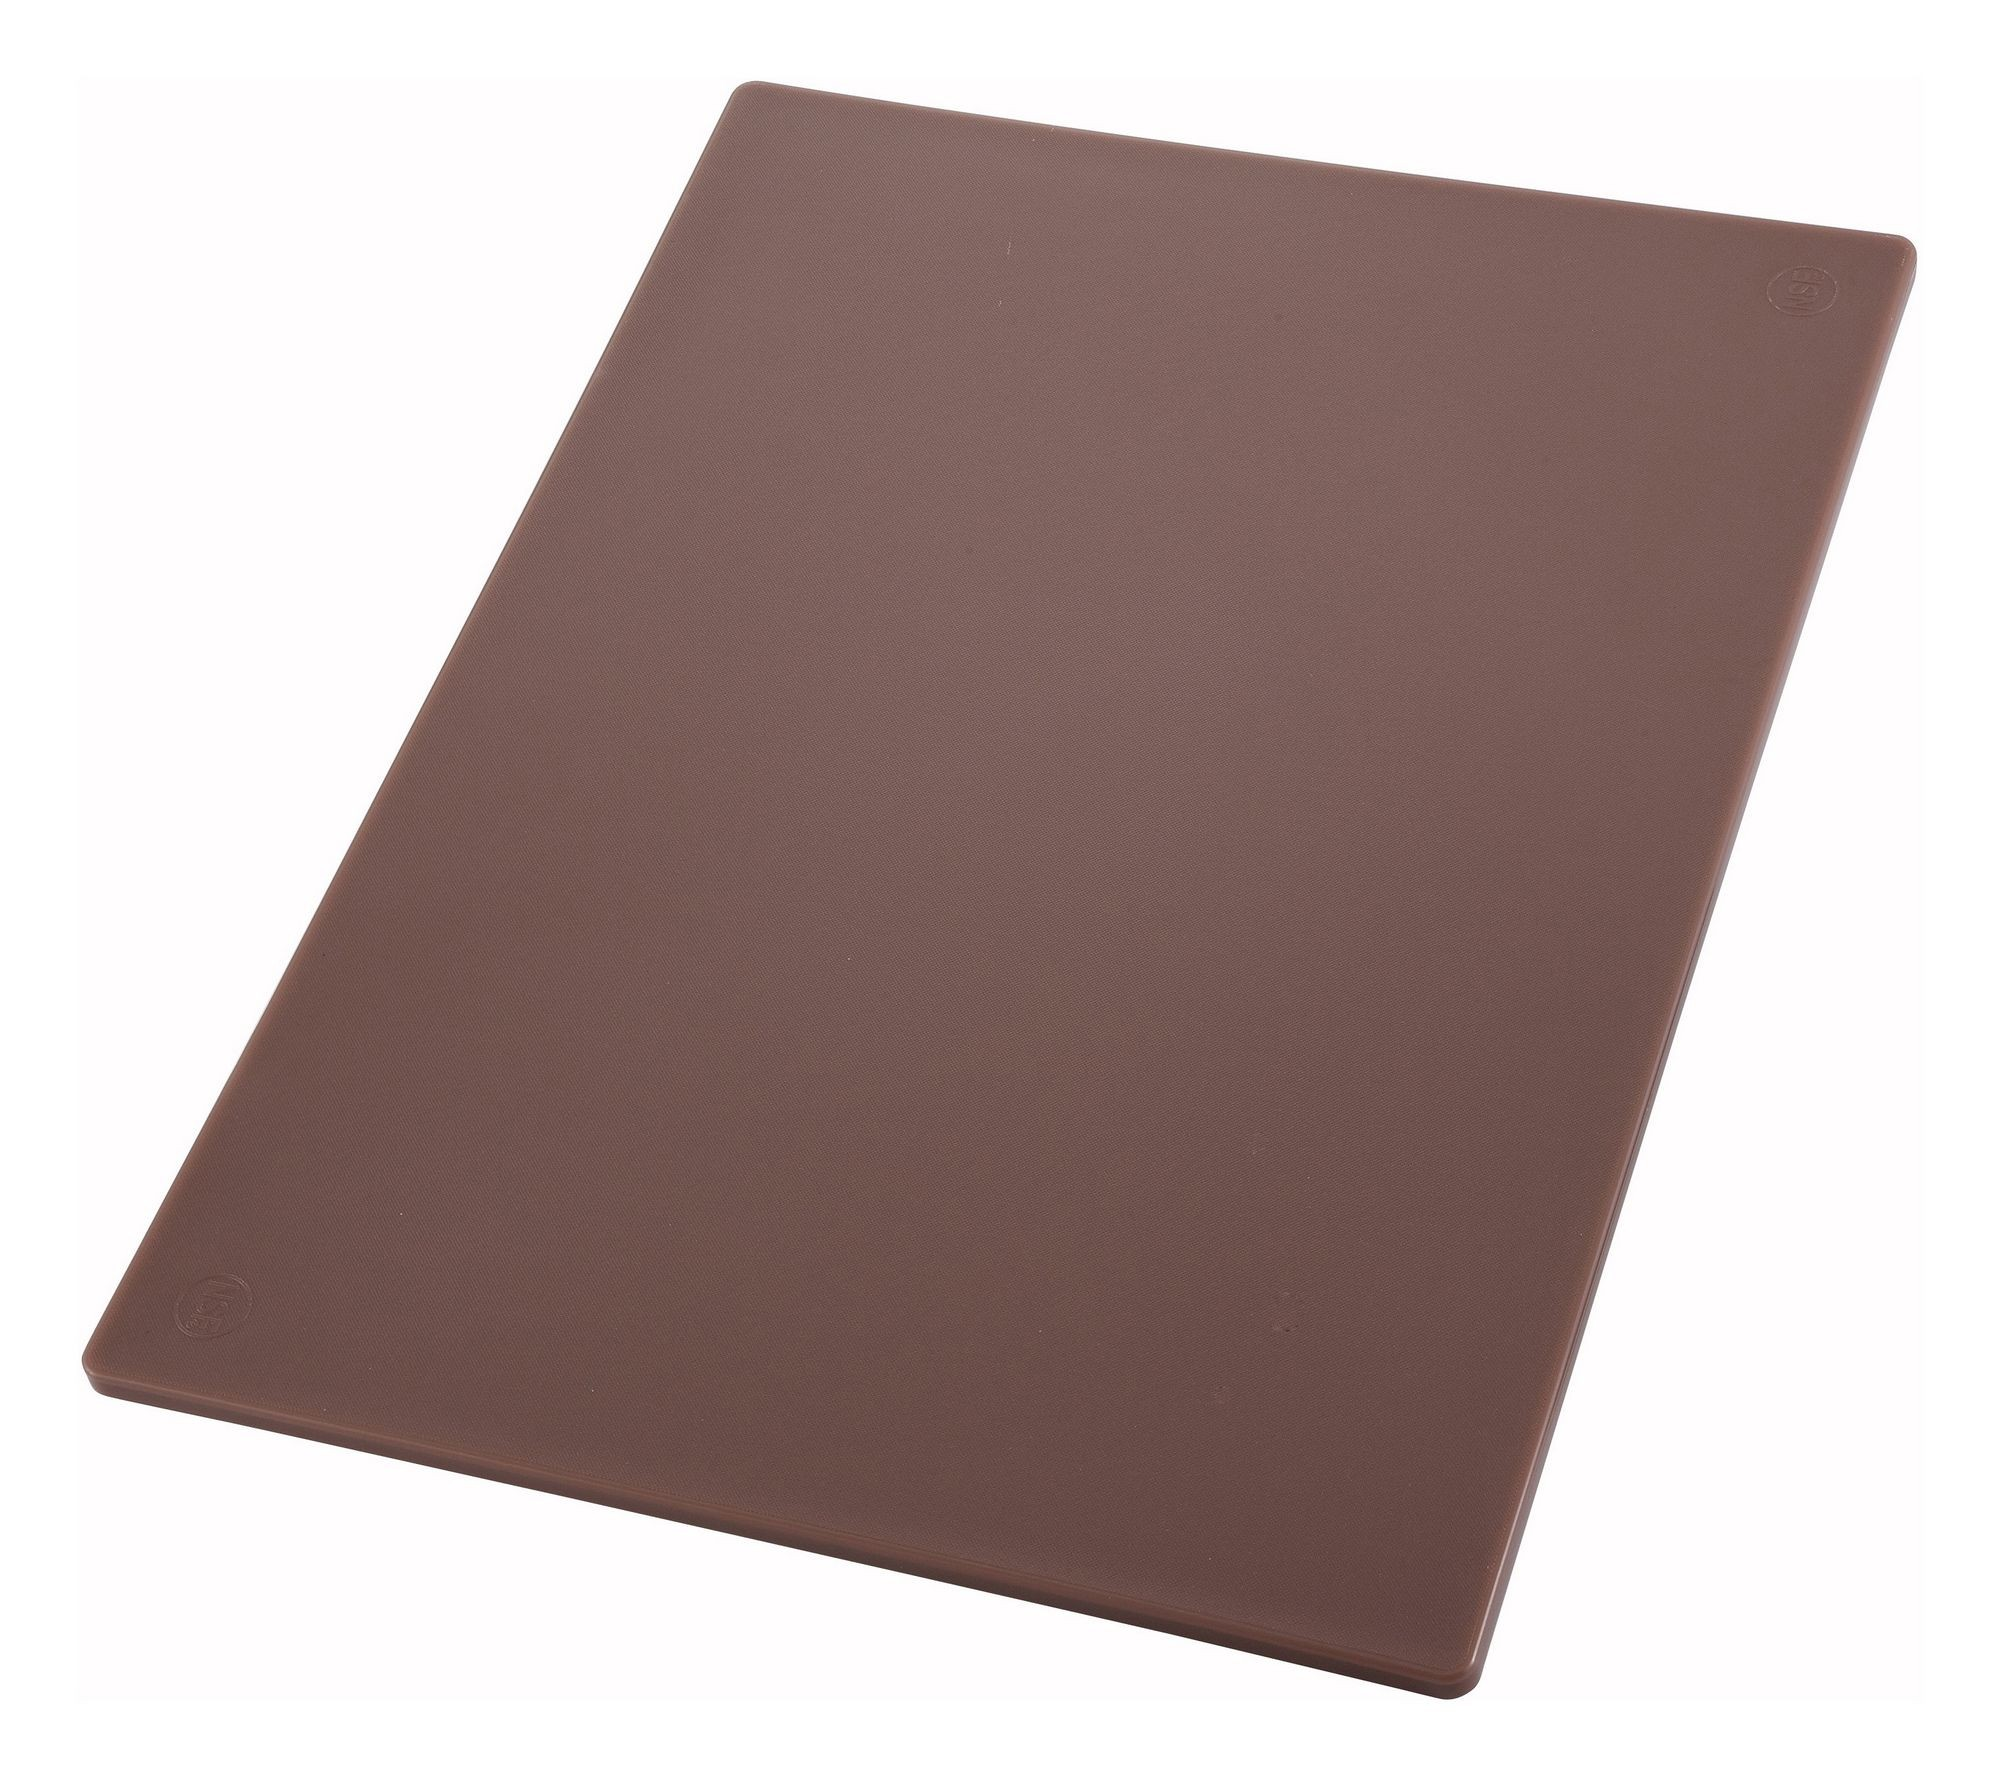 15X20X1/2 Cutting Board Brown (Cooked Meats Board)